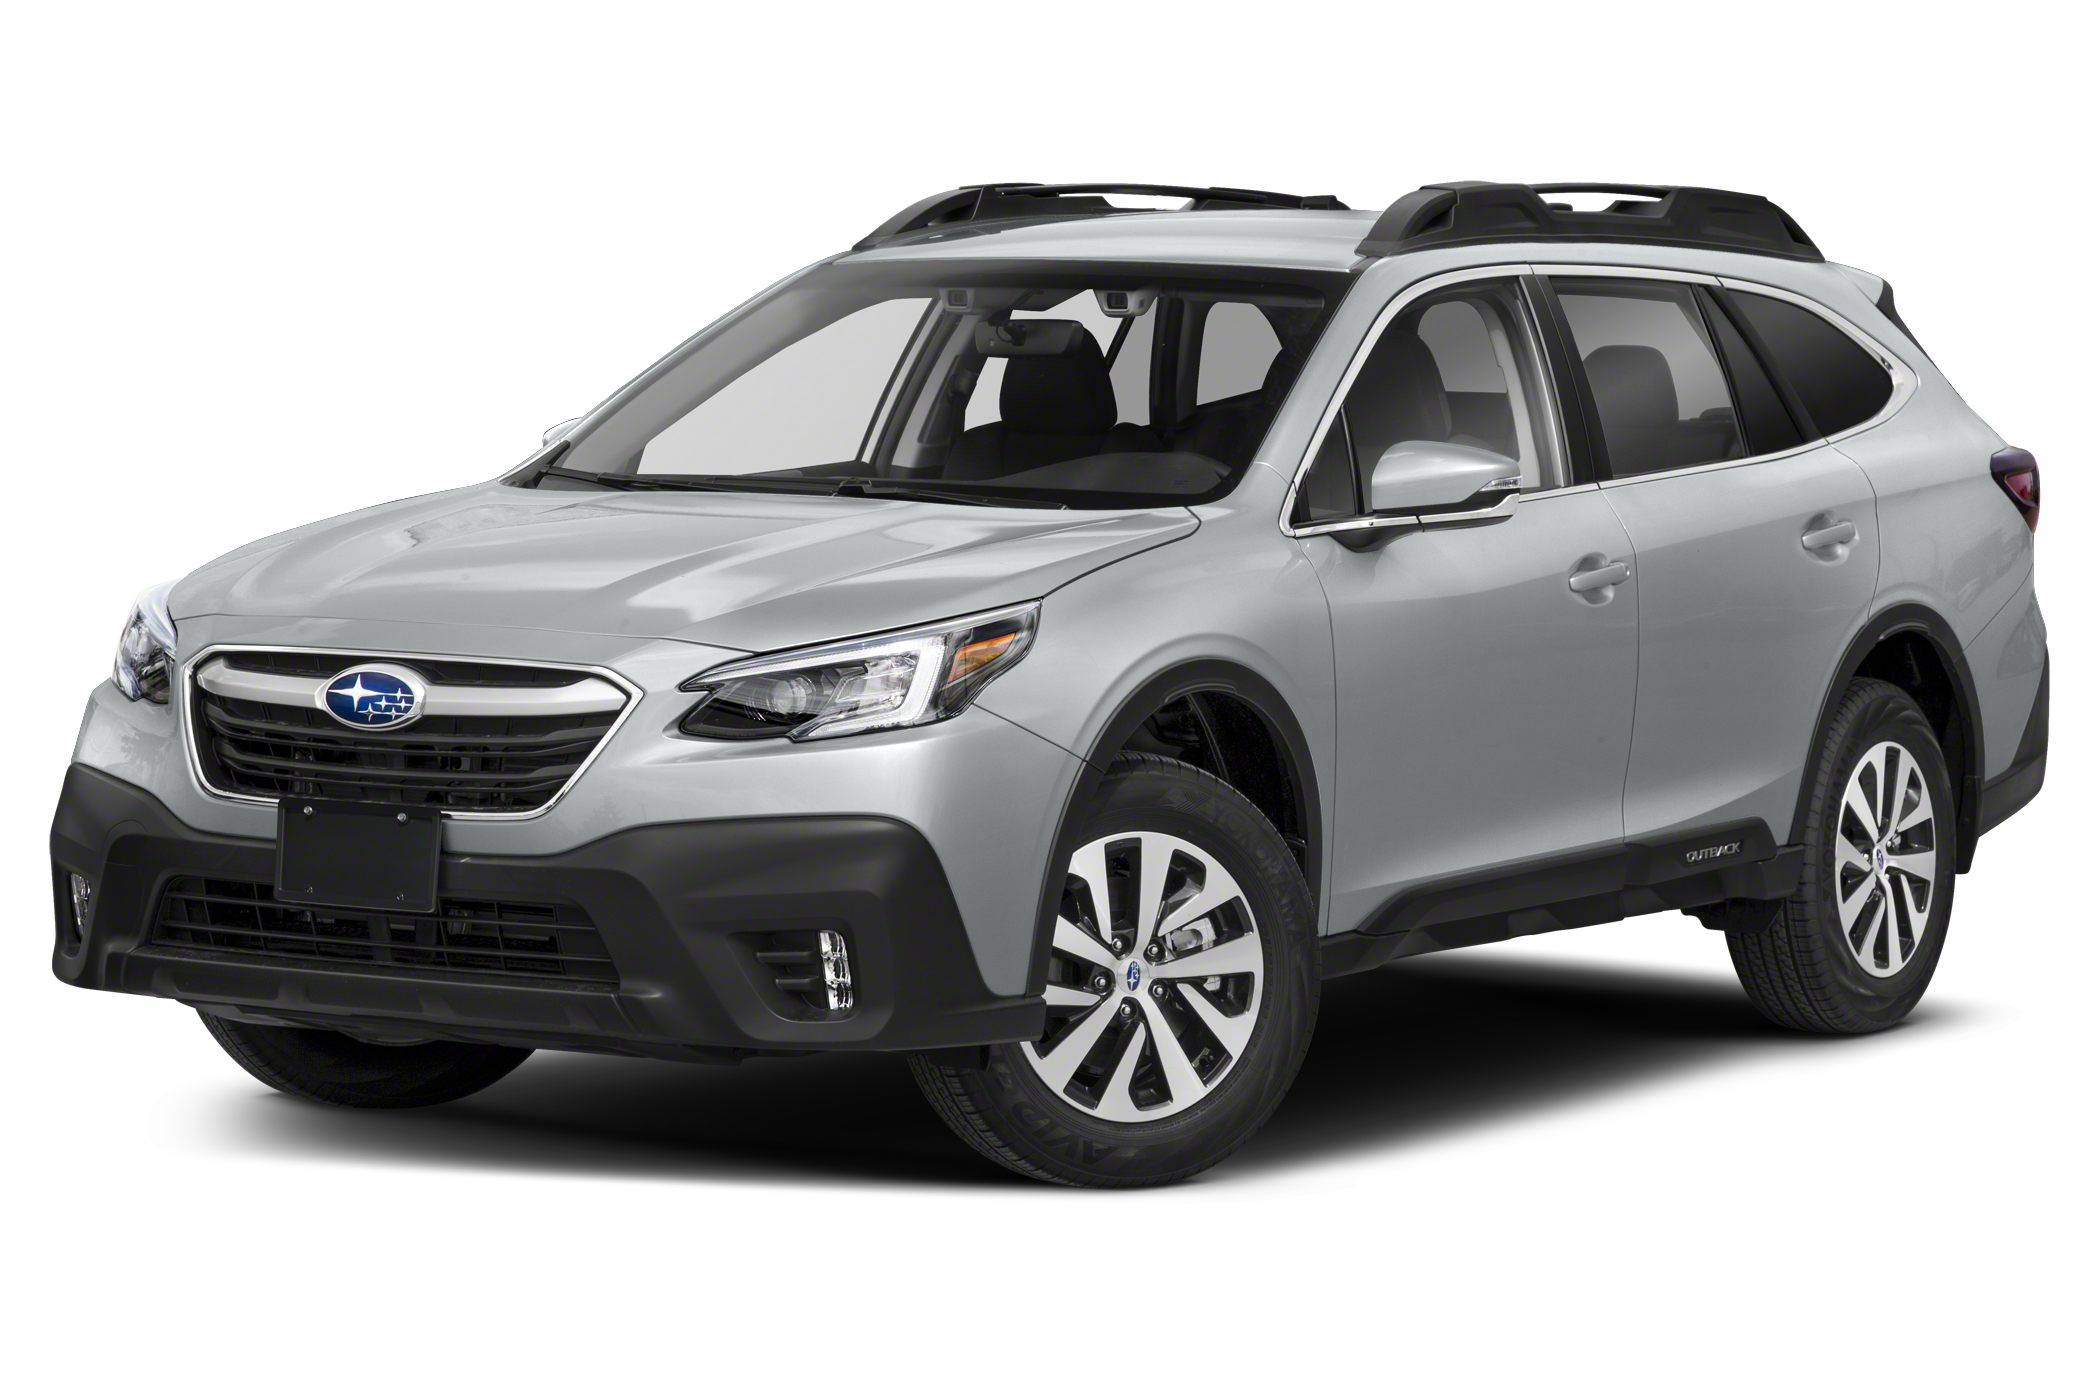 2020 Subaru Outback Specs And Prices